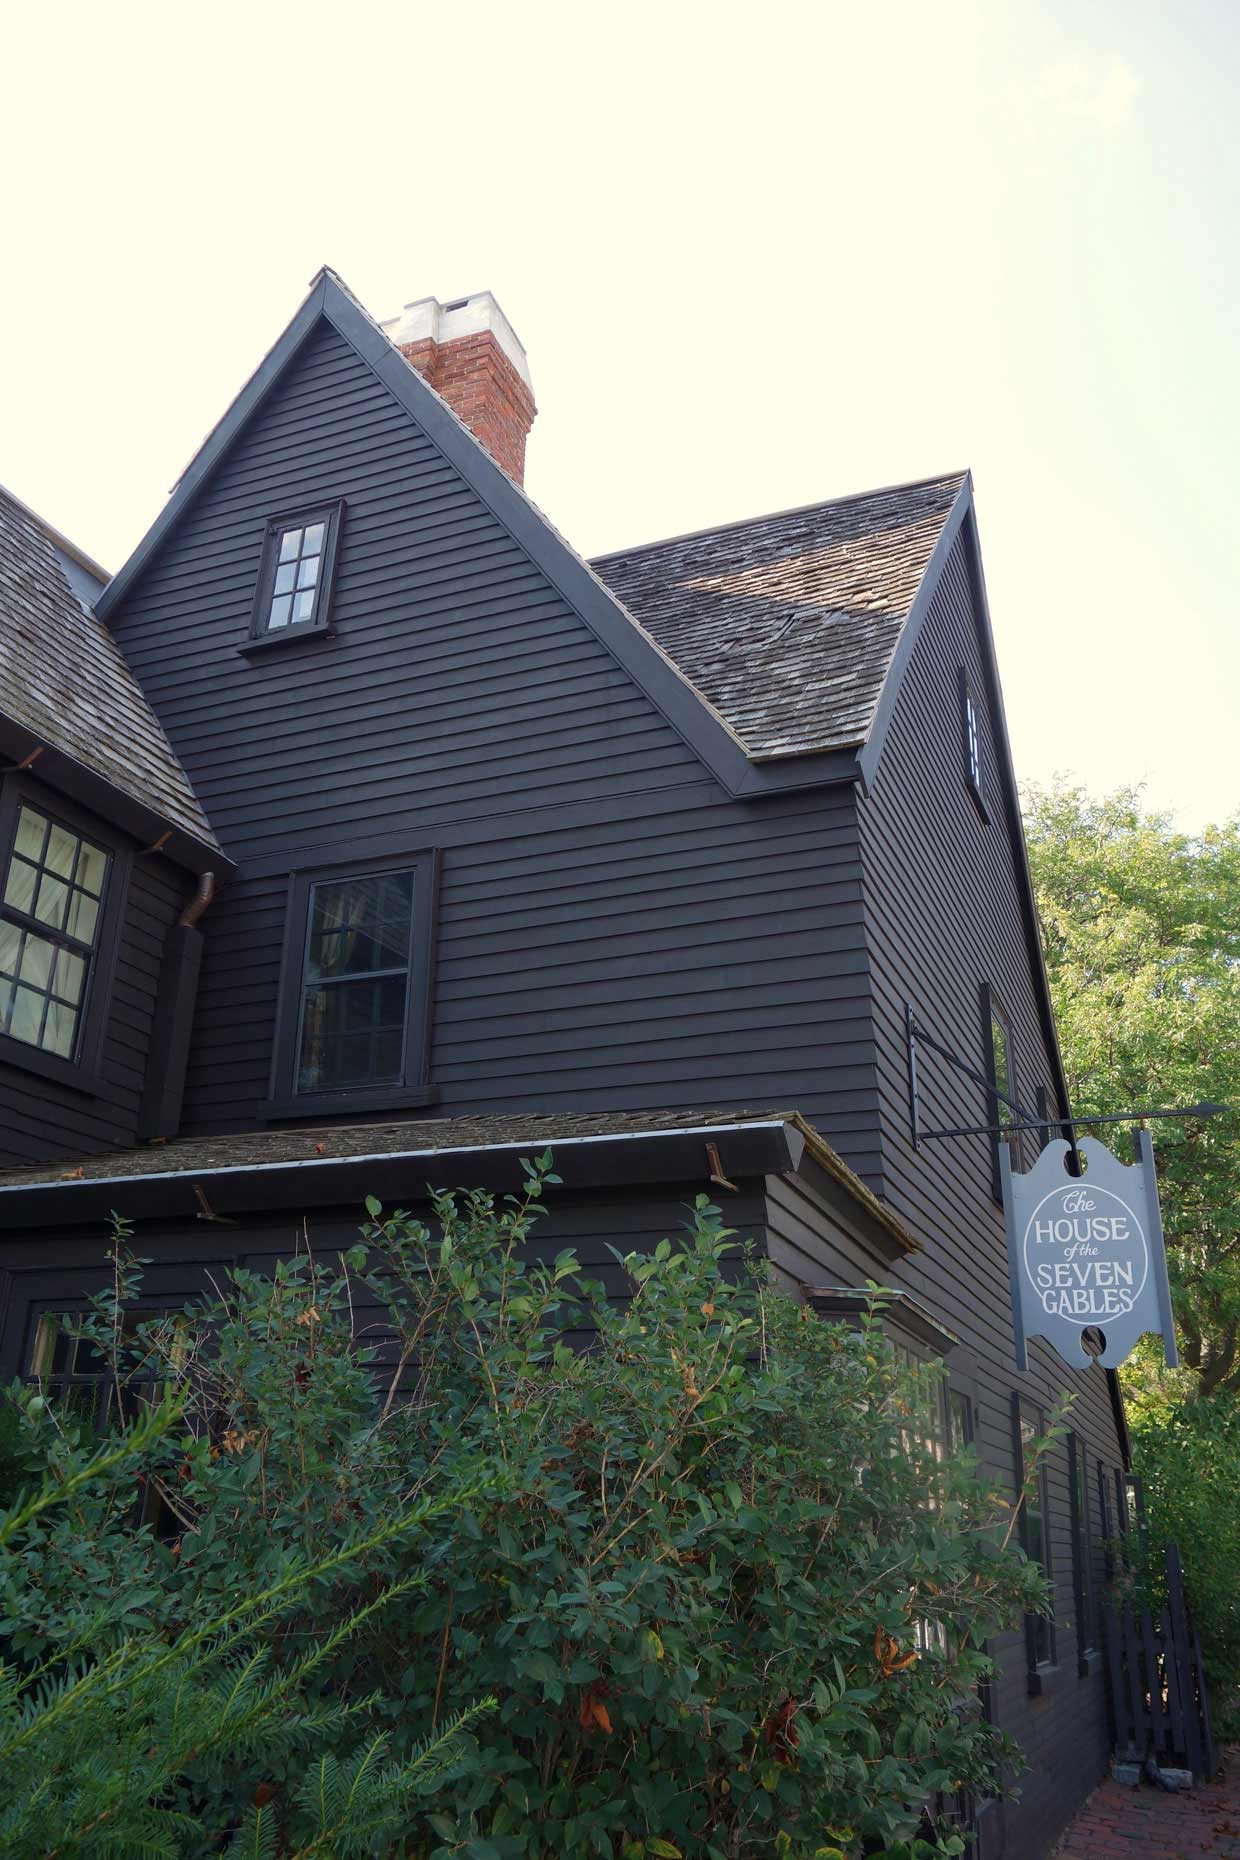 24.-The-House-of-the-Seven-Gables